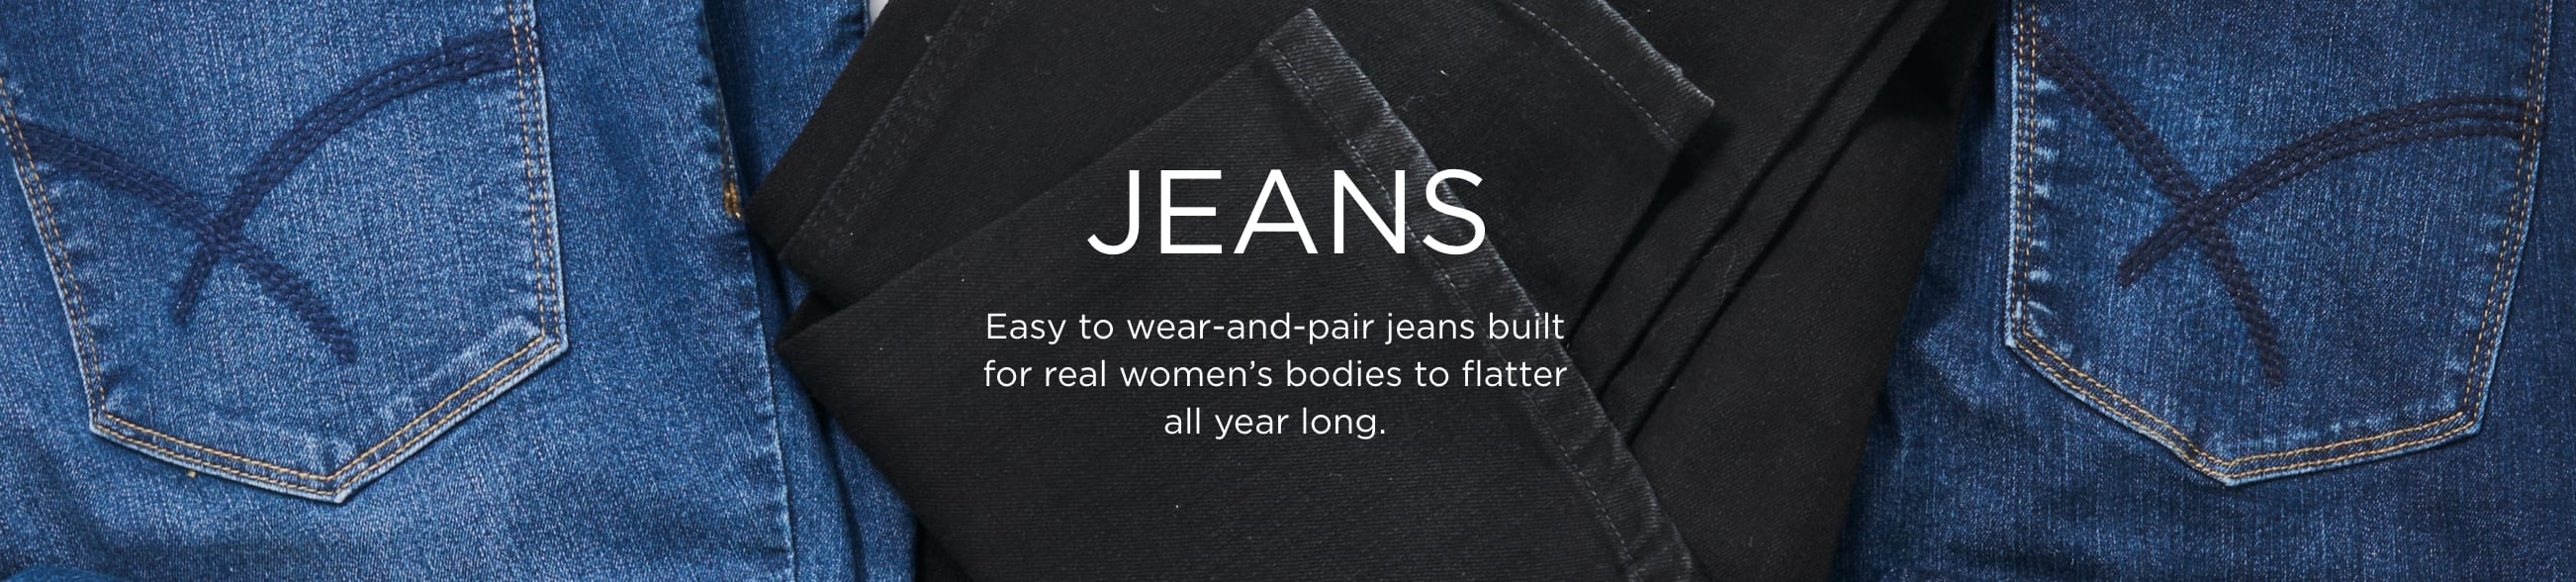 Jeans. Easy to wear-and-pair jeans built for real women's bodies to flatter all year long.